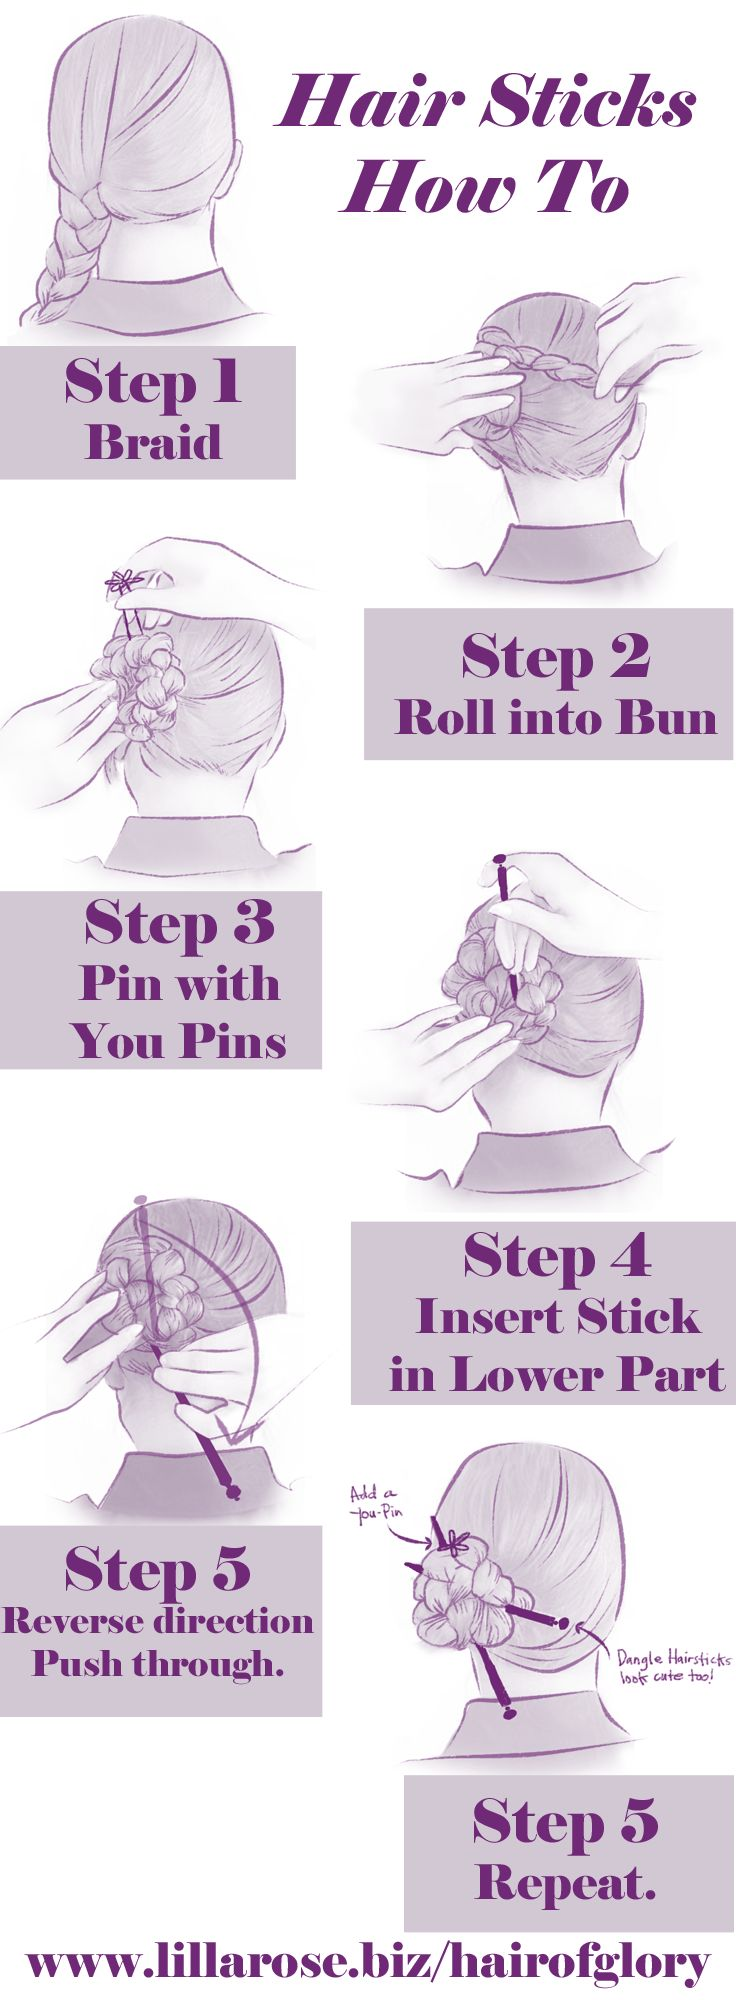 "Hair Stick Tutorial: 1) Make a braid. 2) With one hand hold the braid while other hand guides hair around tightly. 3) Pin up the bun with You-pins. 4) Partially insert a hairstick through the lower part of the bun. 5) Gently reverse the direction of hair stick to make a ""loop"" around the hair inside the bun. 6) Push the rest of the hairstick through the bun. 7) Repeat with other stick. Such a simple stick can be as stylish, chic, and effortless! www.lillarose.biz/hairofglory"